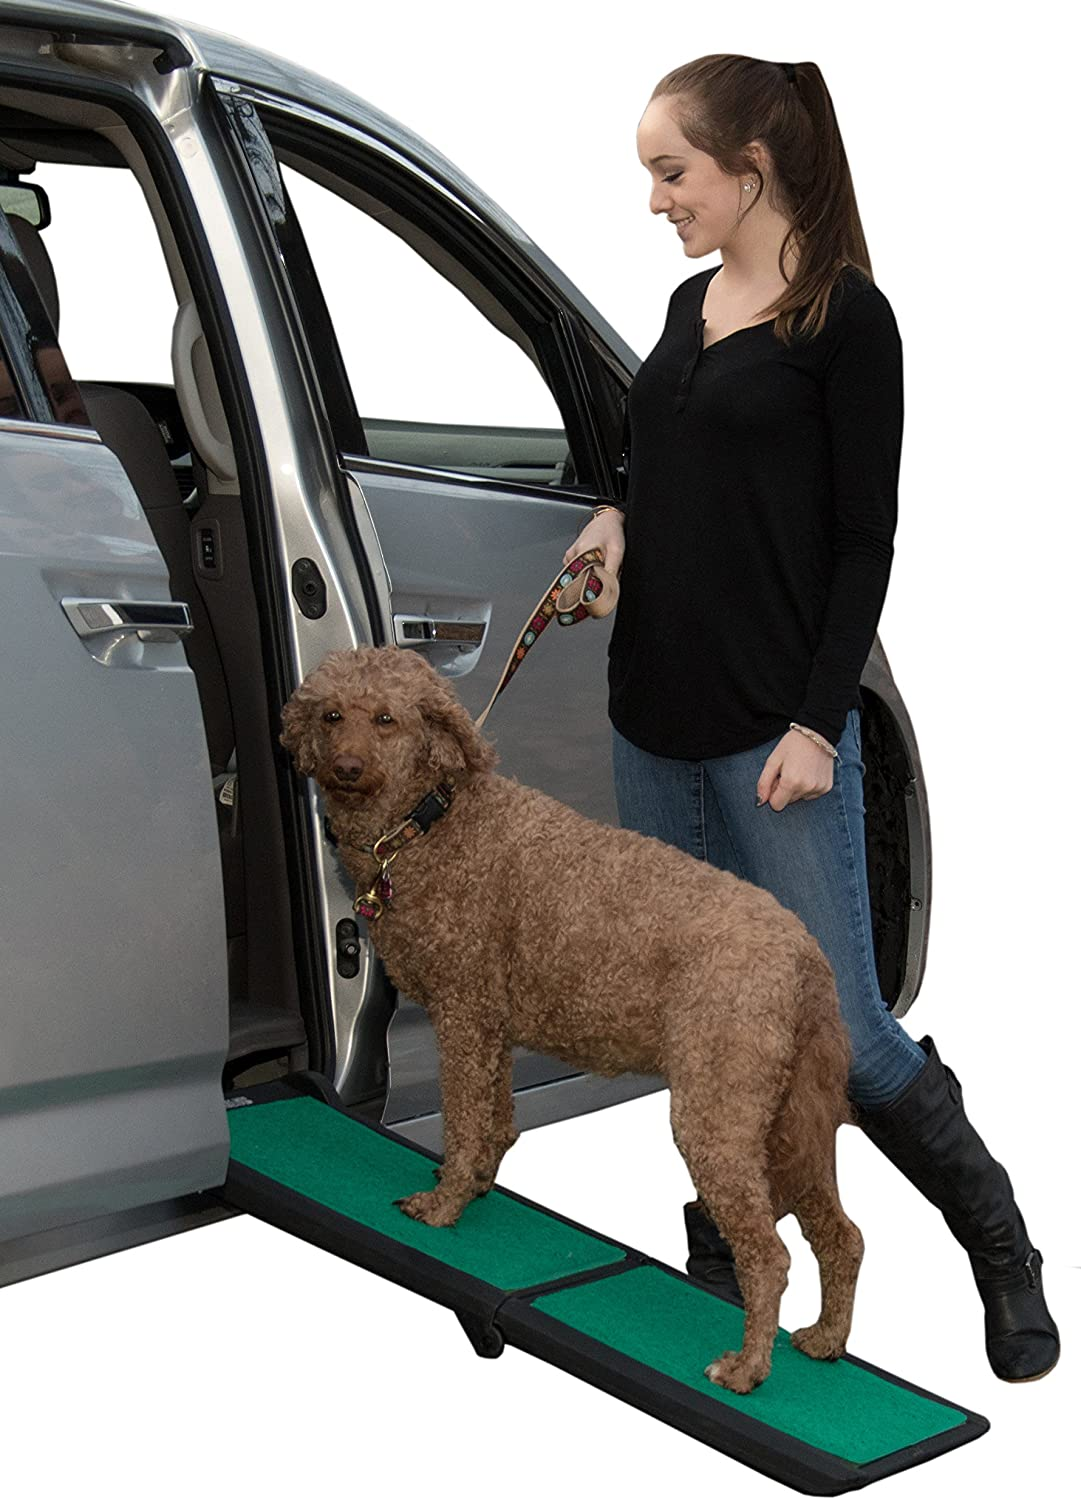 Pet Gear Travel Lite Ramp with supertraX Surface for Maximum Traction, 4 Models to Choose from, 42-71 in. Long, Supports 150-200 lbs, Find The Best Fit for Your Pet, Black/Green : Kitchen & Dining